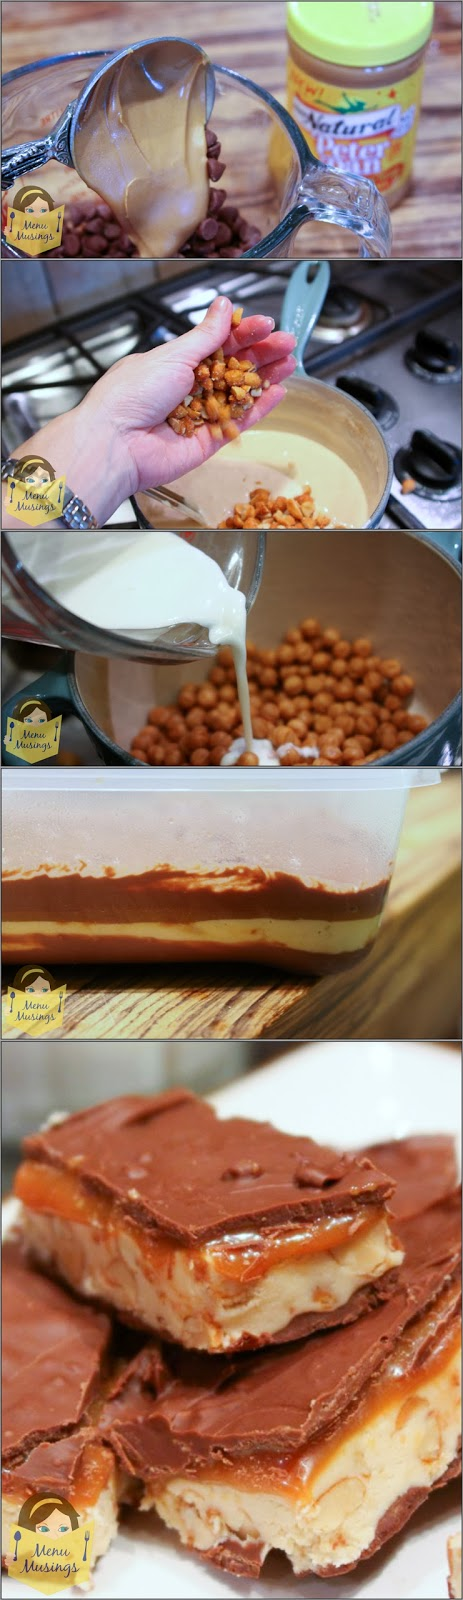 http://menumusings.blogspot.com/2012/03/homemade-snickers-bars.html